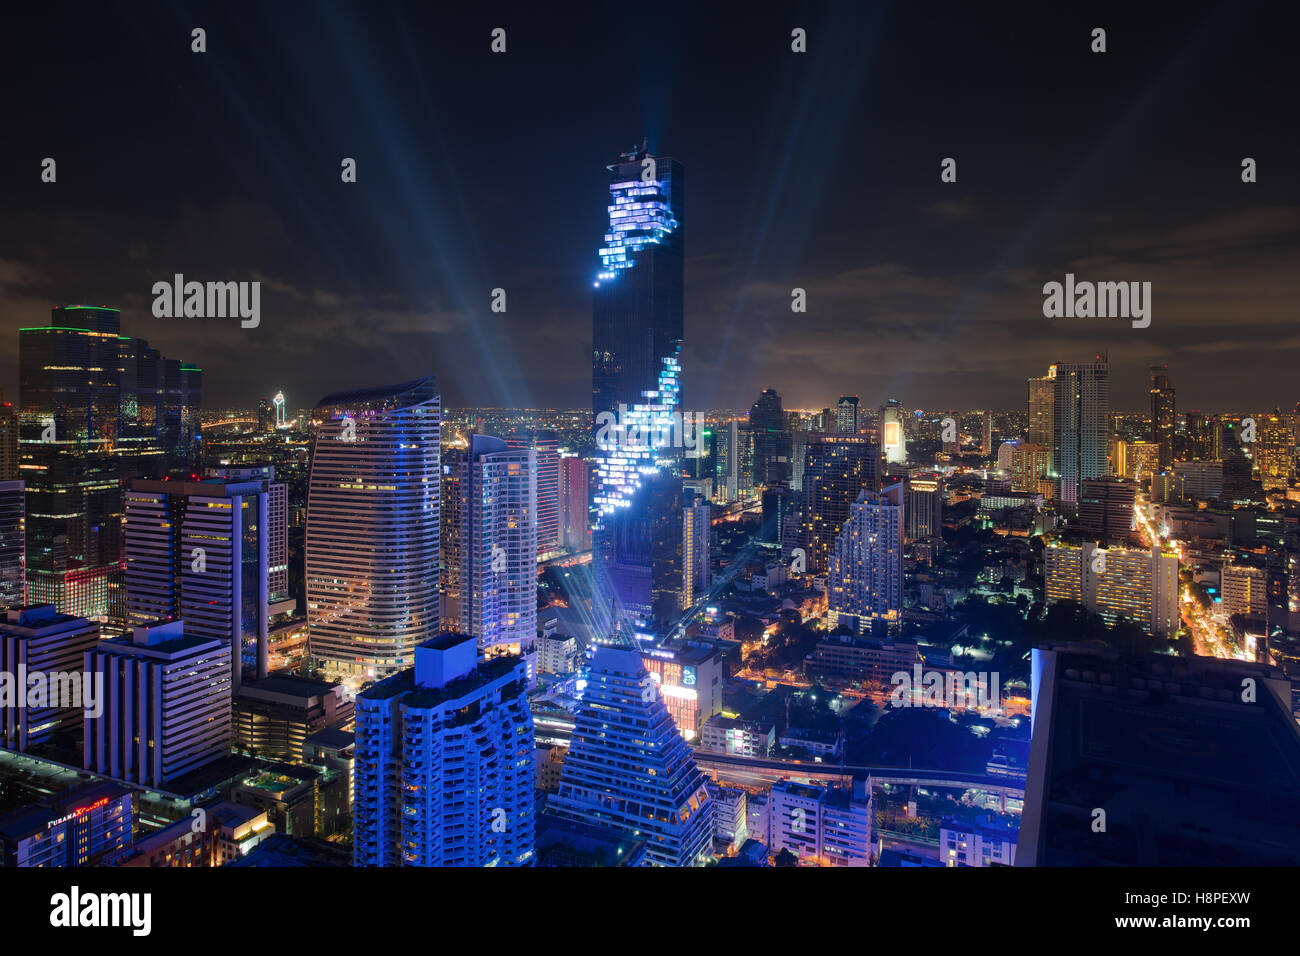 Light and sound show on Mahanakhon building,Mahanakhon building is tallest building in Bangkok,Thailand. - Stock Image